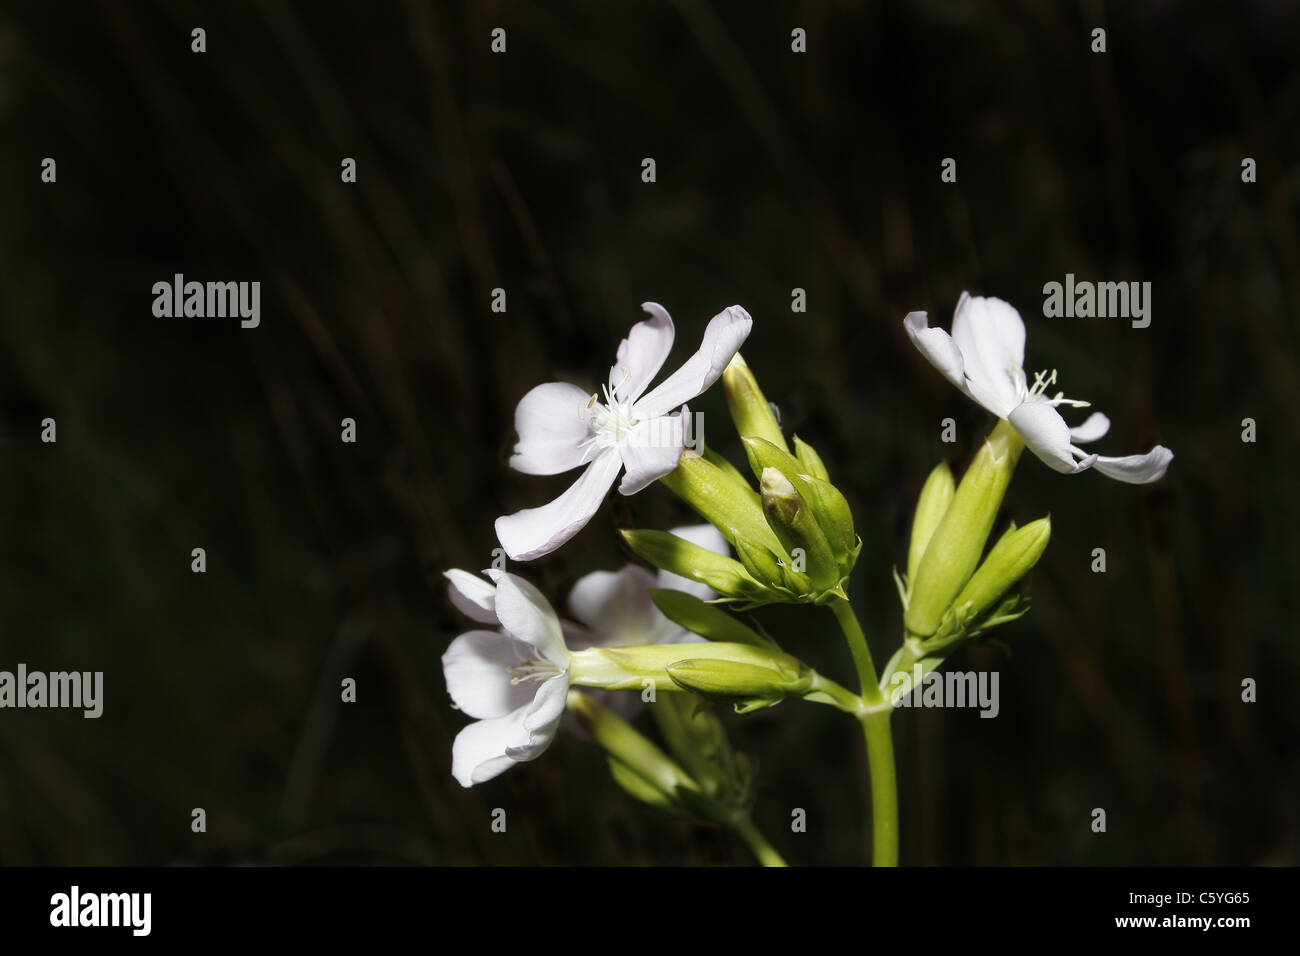 image of pale lilac flower against black background - Stock Image